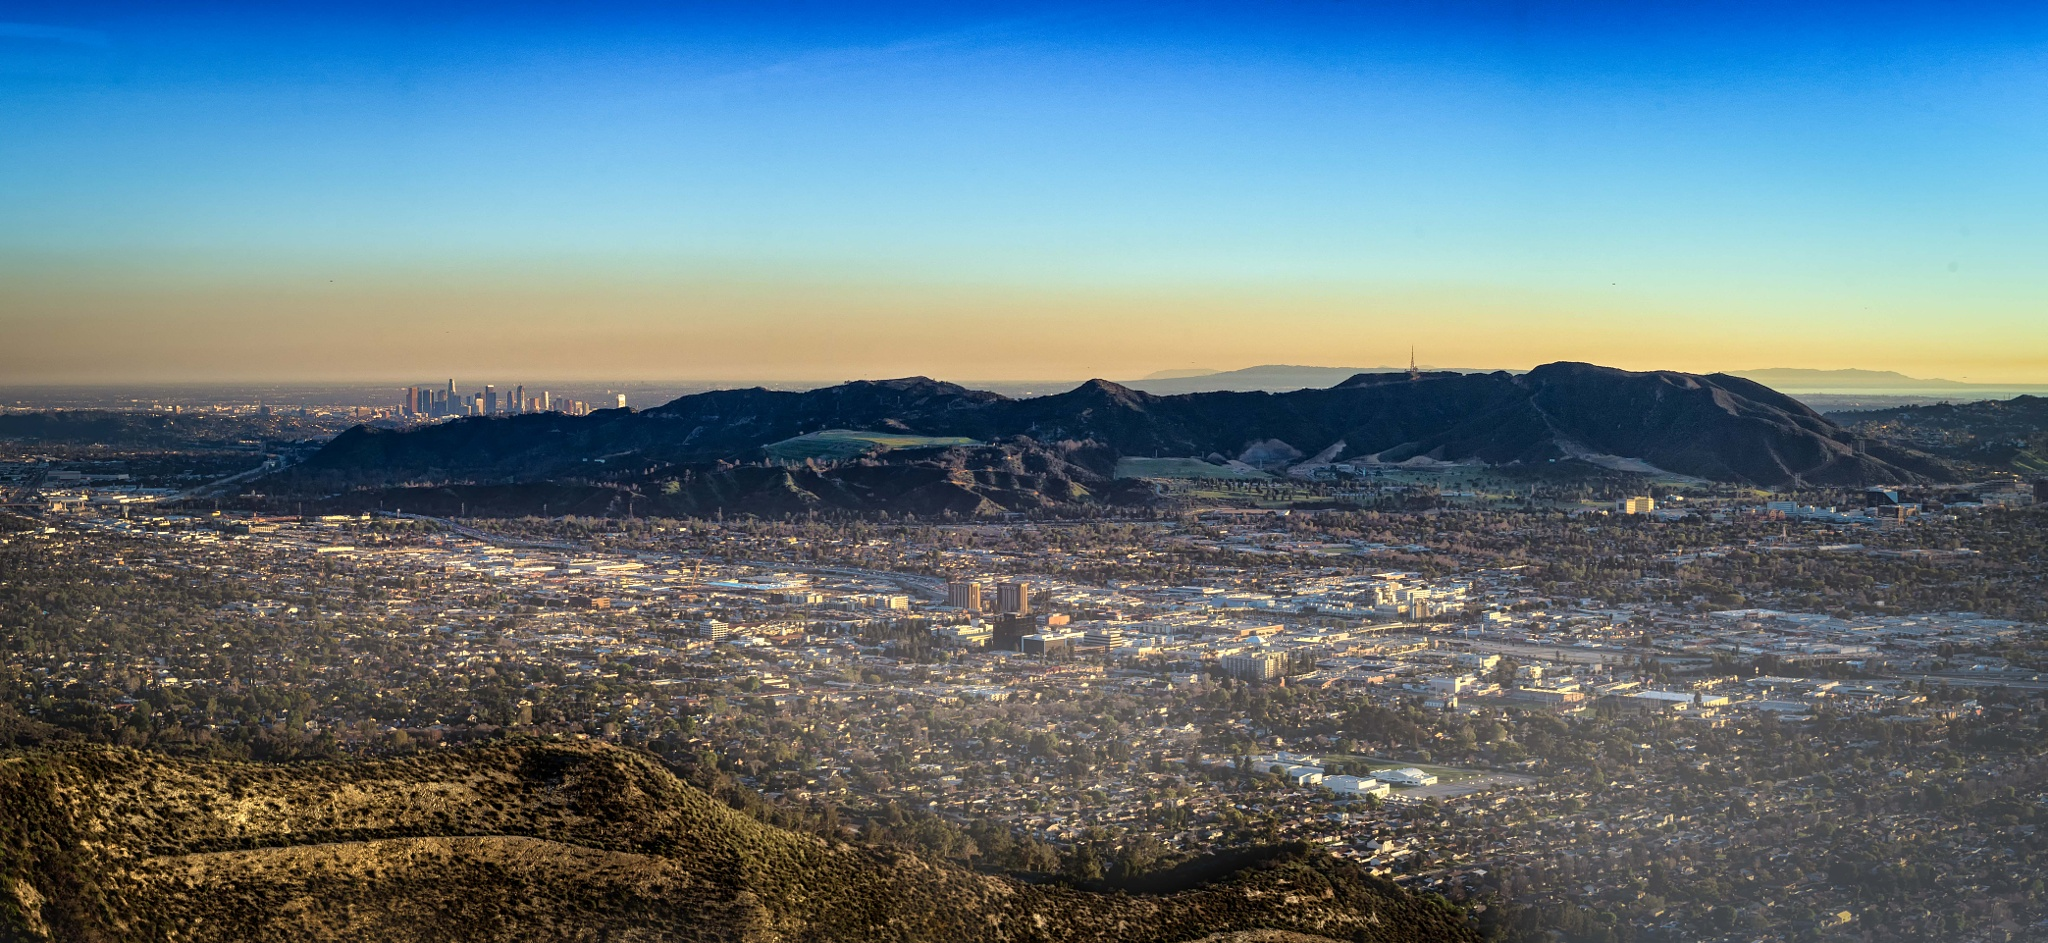 Los Angeles Basin by ReaperScoob Photography